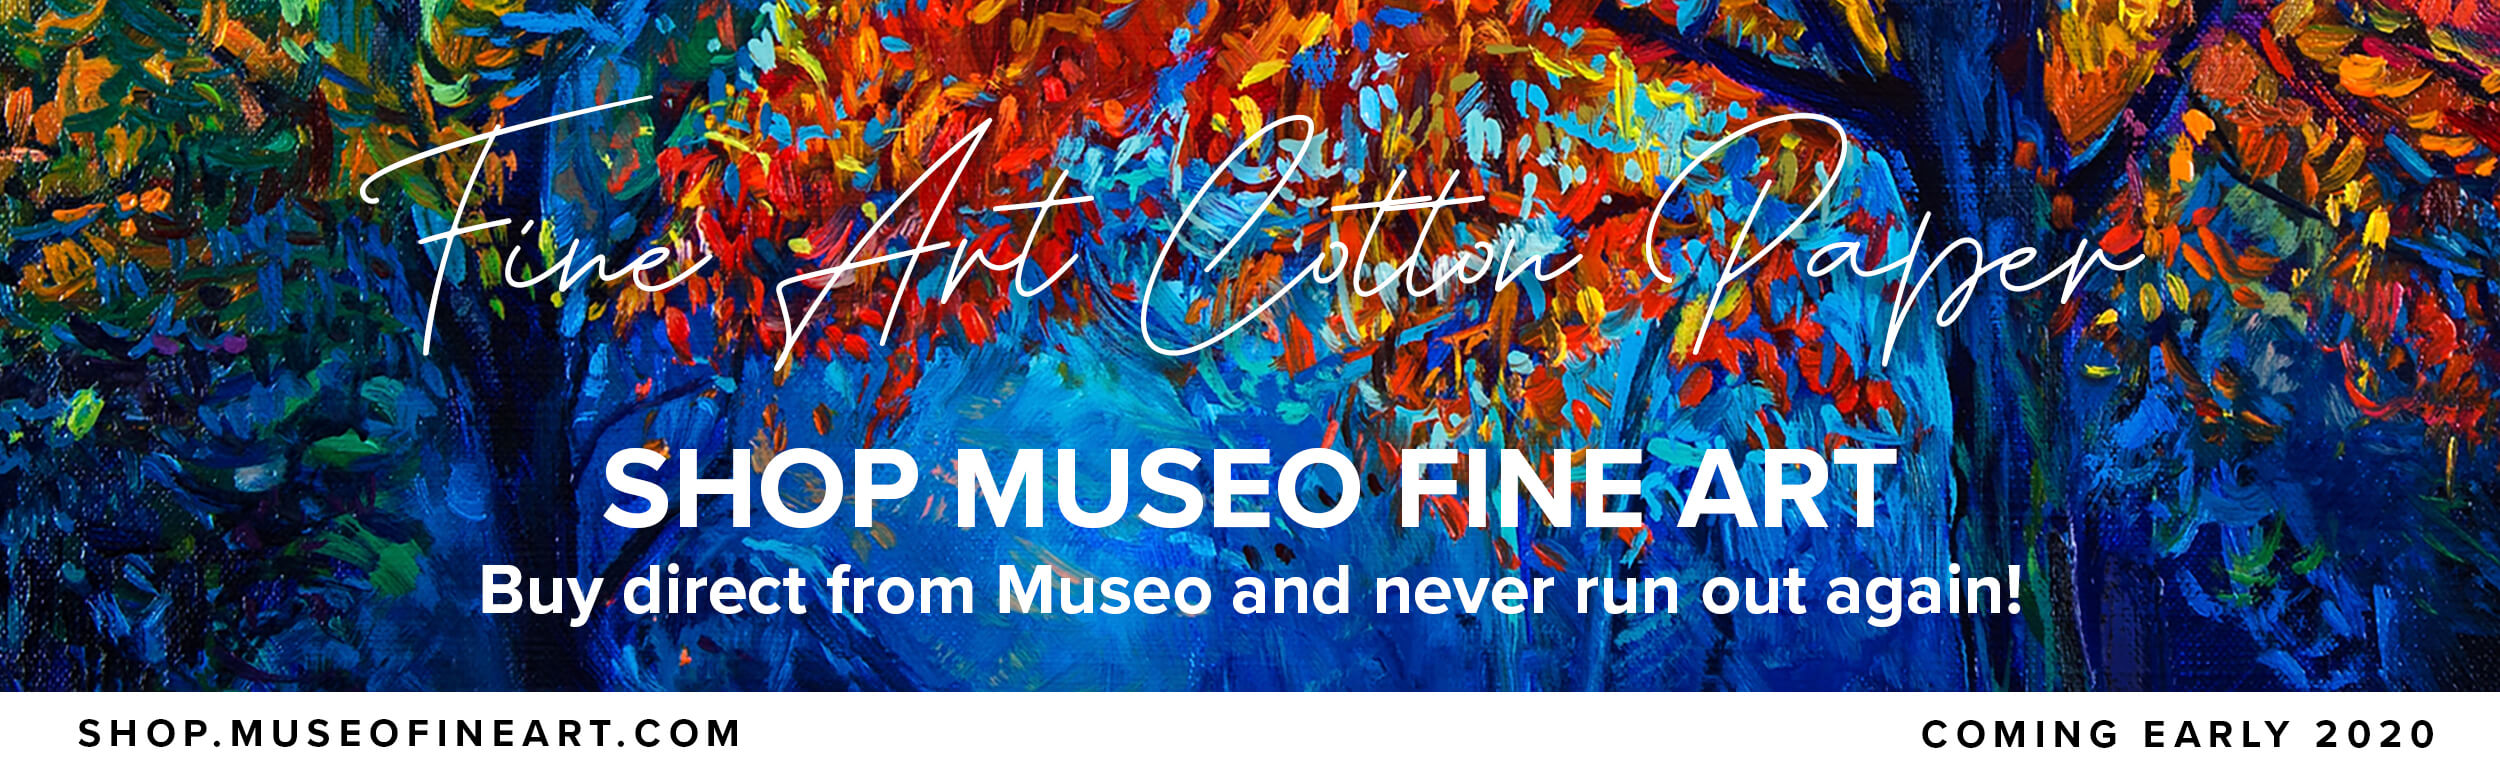 Shop for MUSEO products online in 2020.